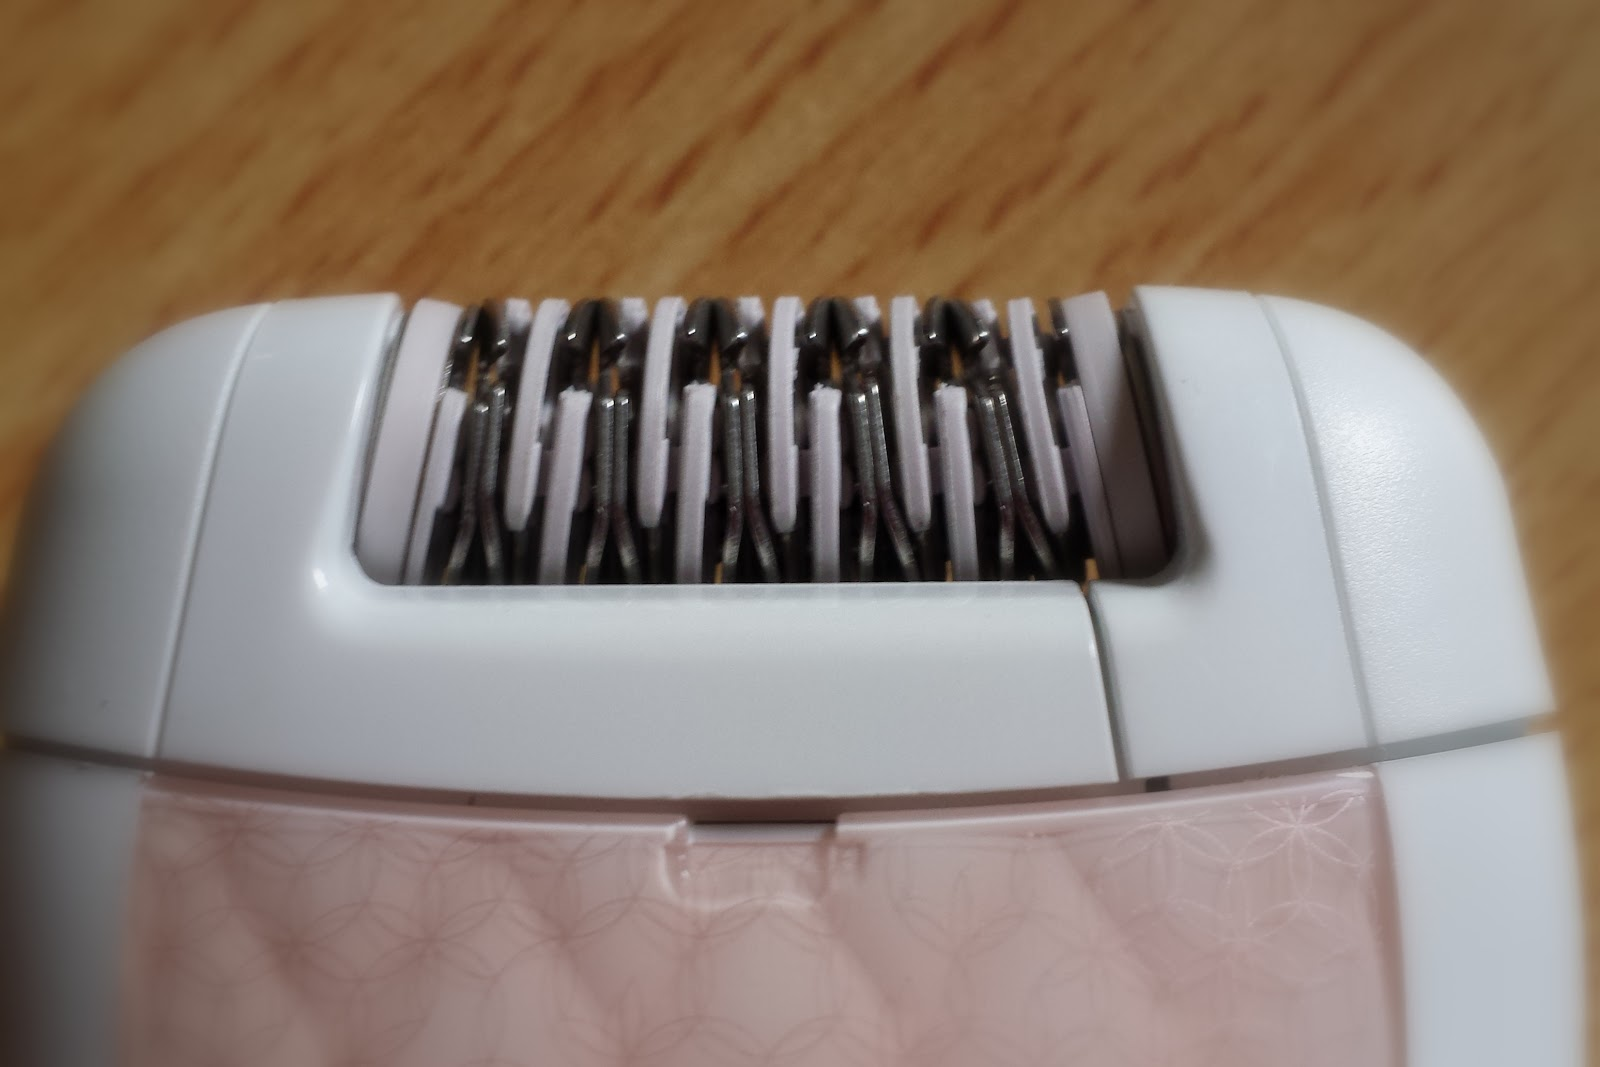 How to Use the Epilator